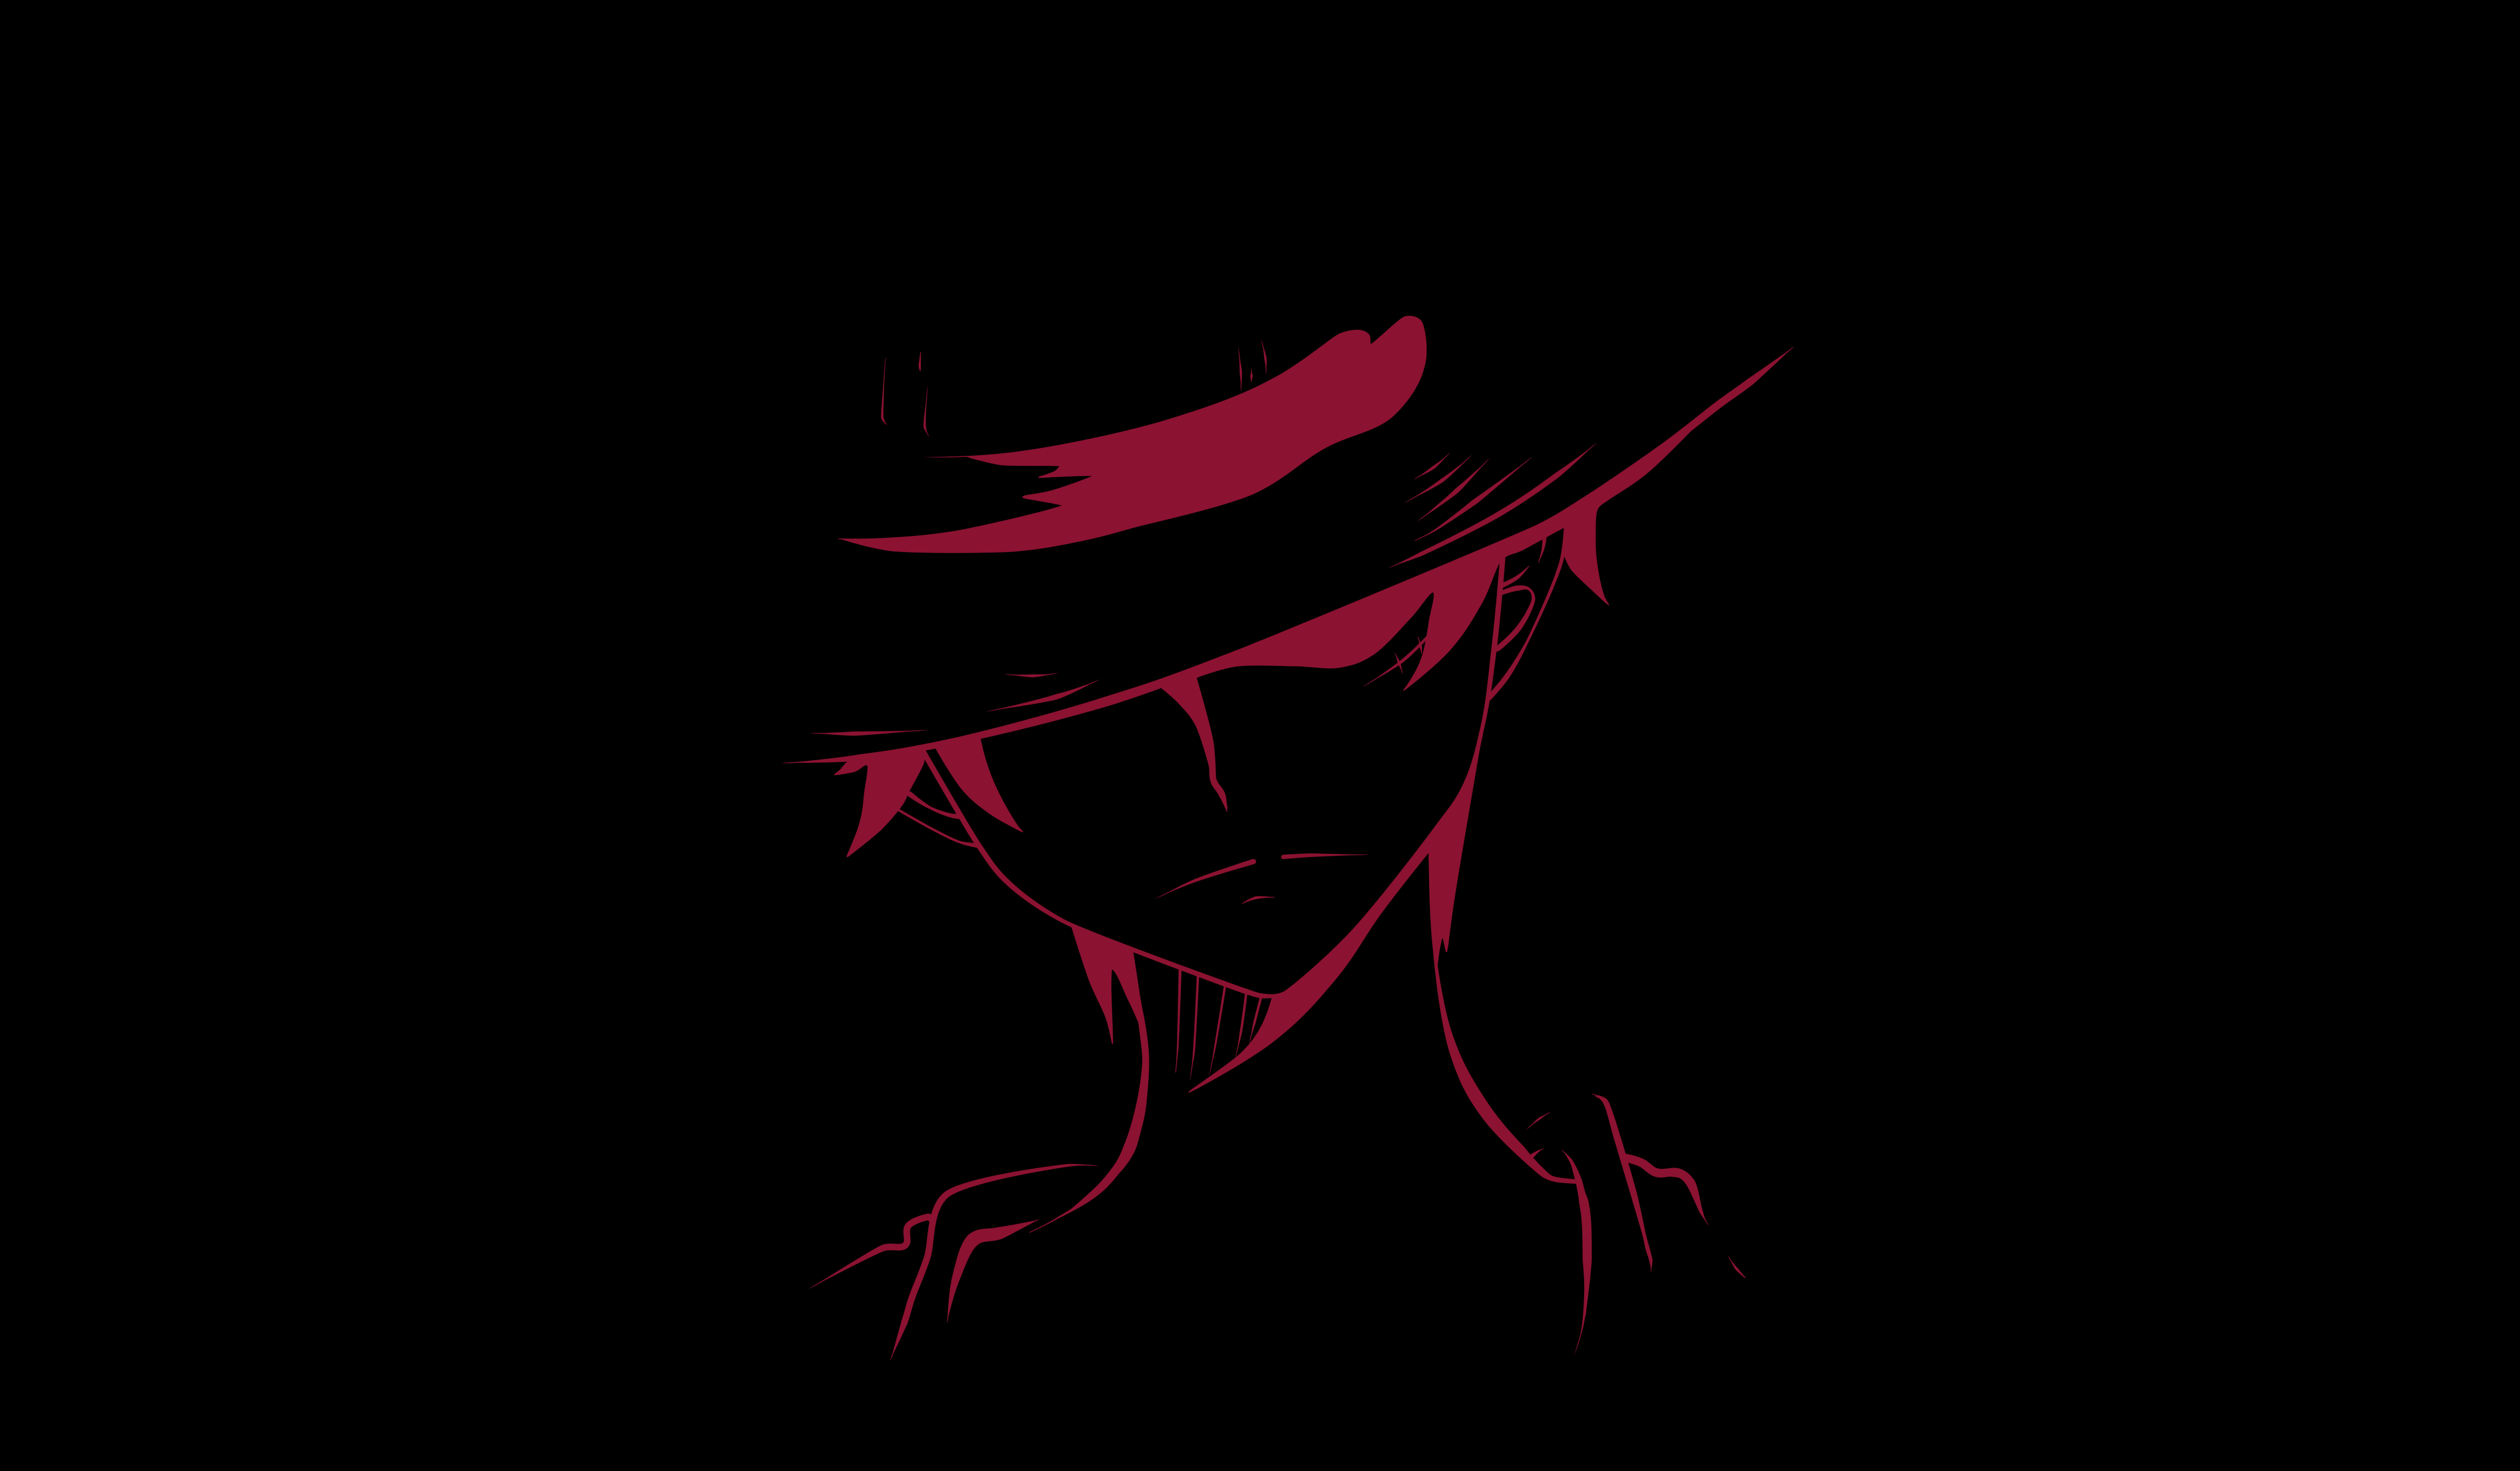 Monkey Luffy Wallpaper Hd Anime 4k Wallpapers Images Photos And Background